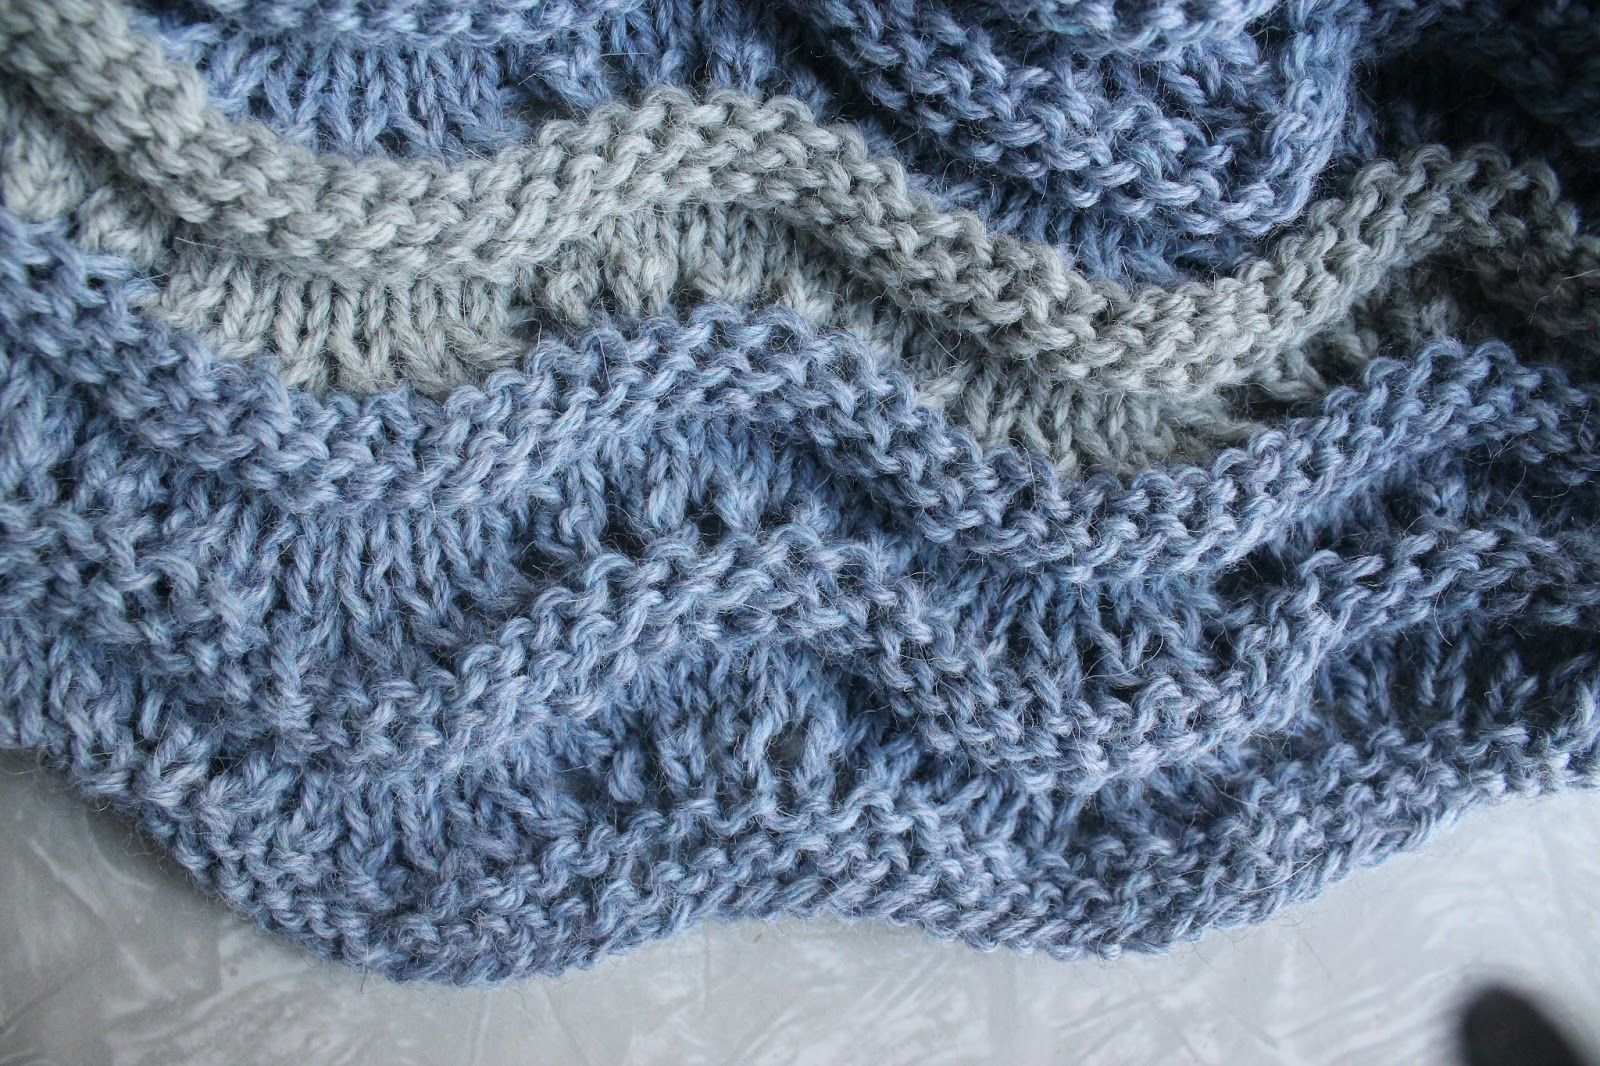 Knitting Stitches Waves : Everyday Life at Leisure: Waves of Texture